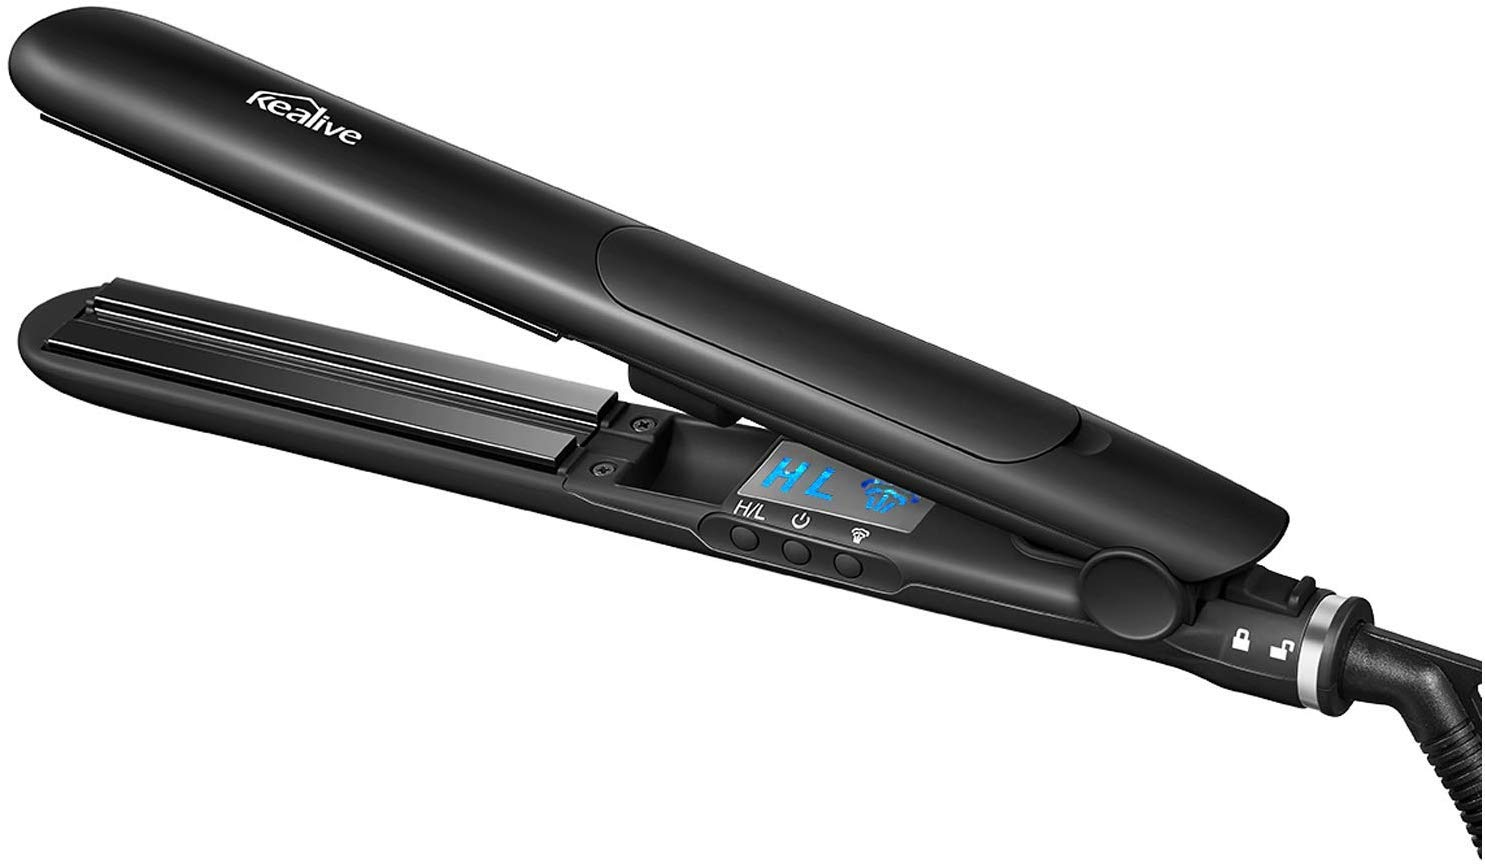 Kealive Professional Steam Straightener